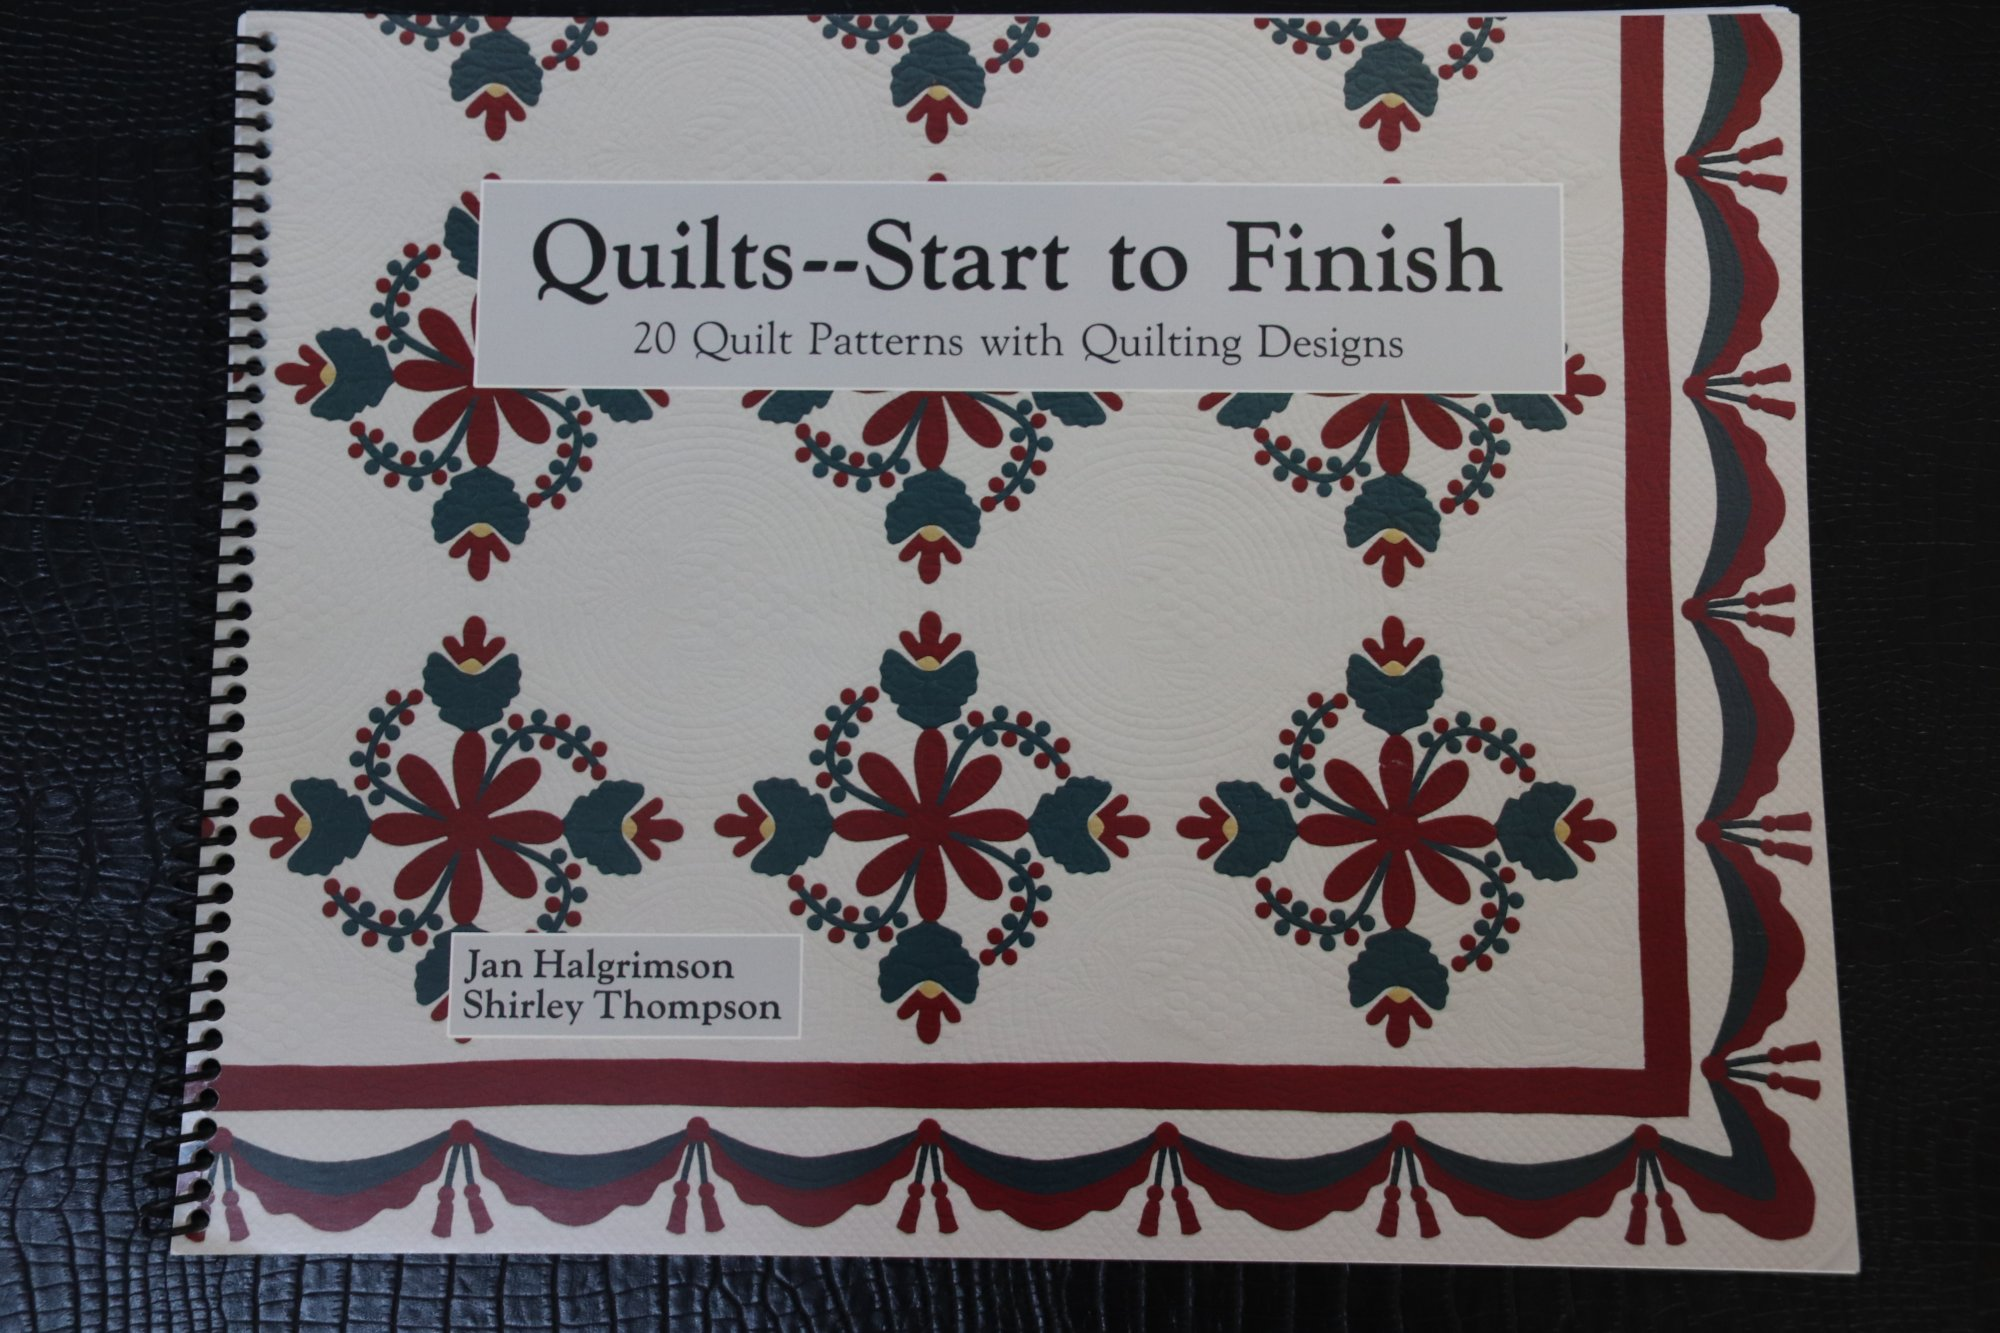 Quilts--Start to Finish  Jan Halgrimson/Shirley Thompson